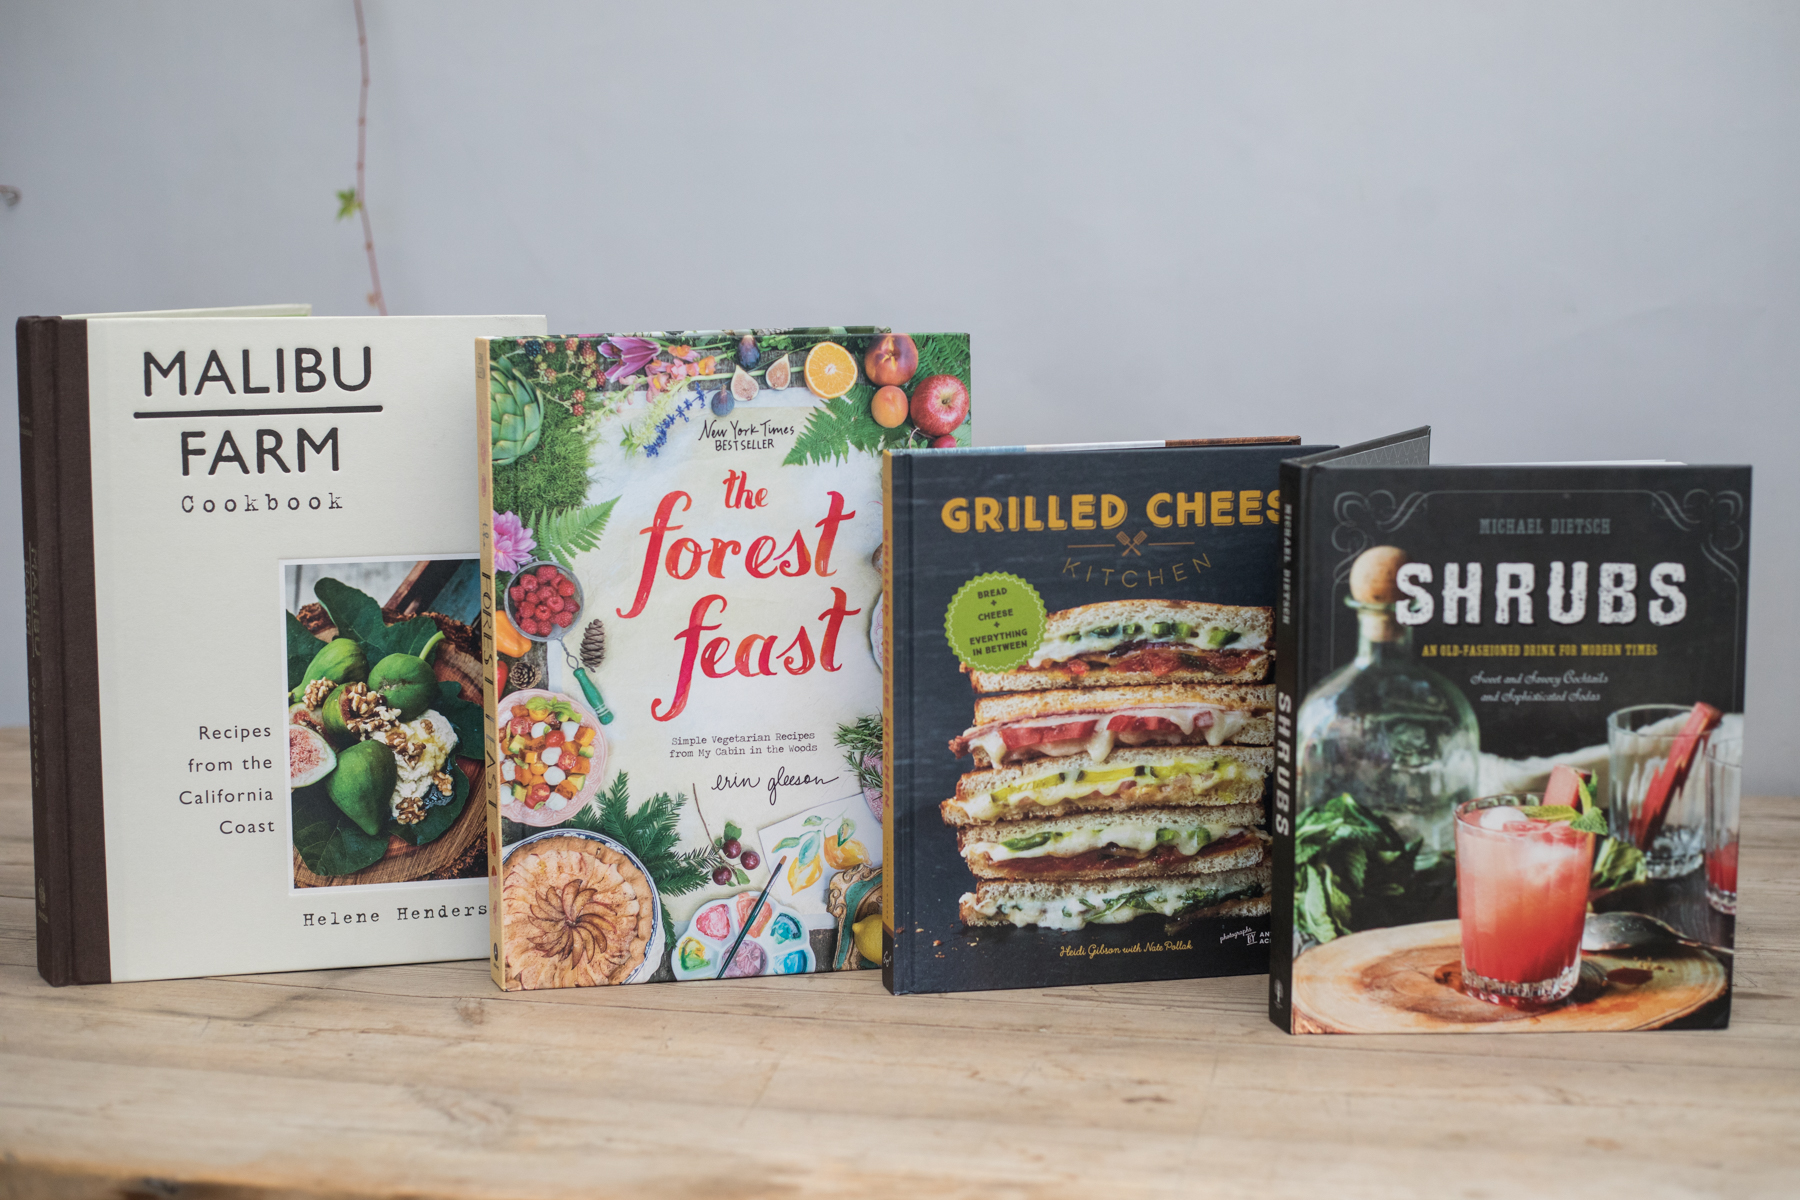 gourmet food rogers gardens cookbooks the forest feast malibu farm cookbook grilled cheese shrubs